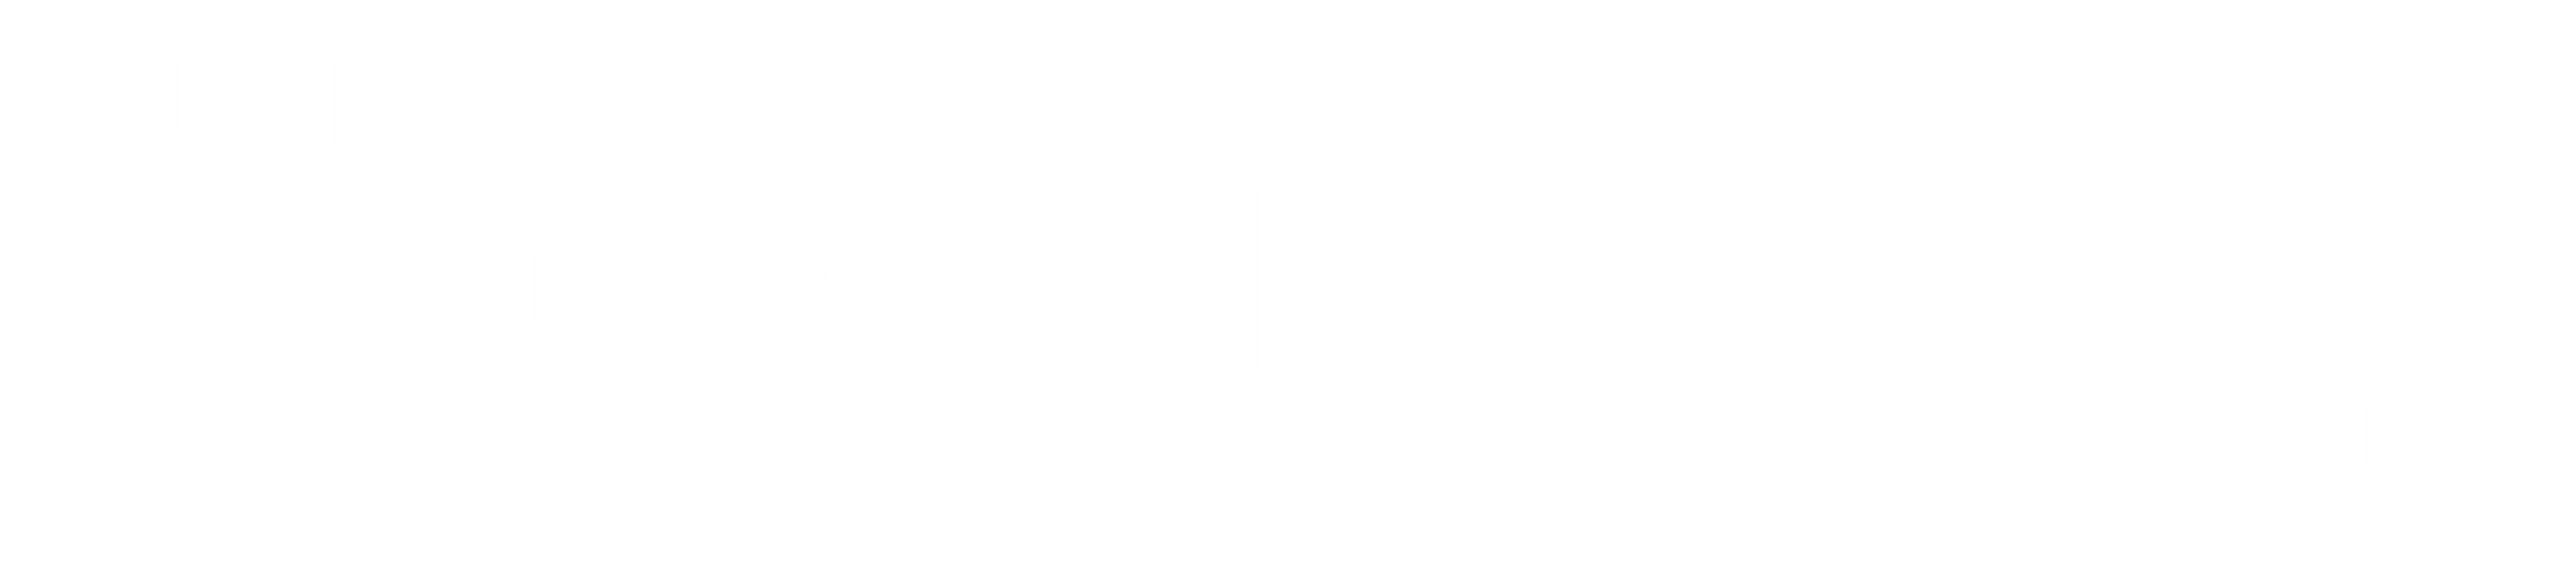 The Digital Group